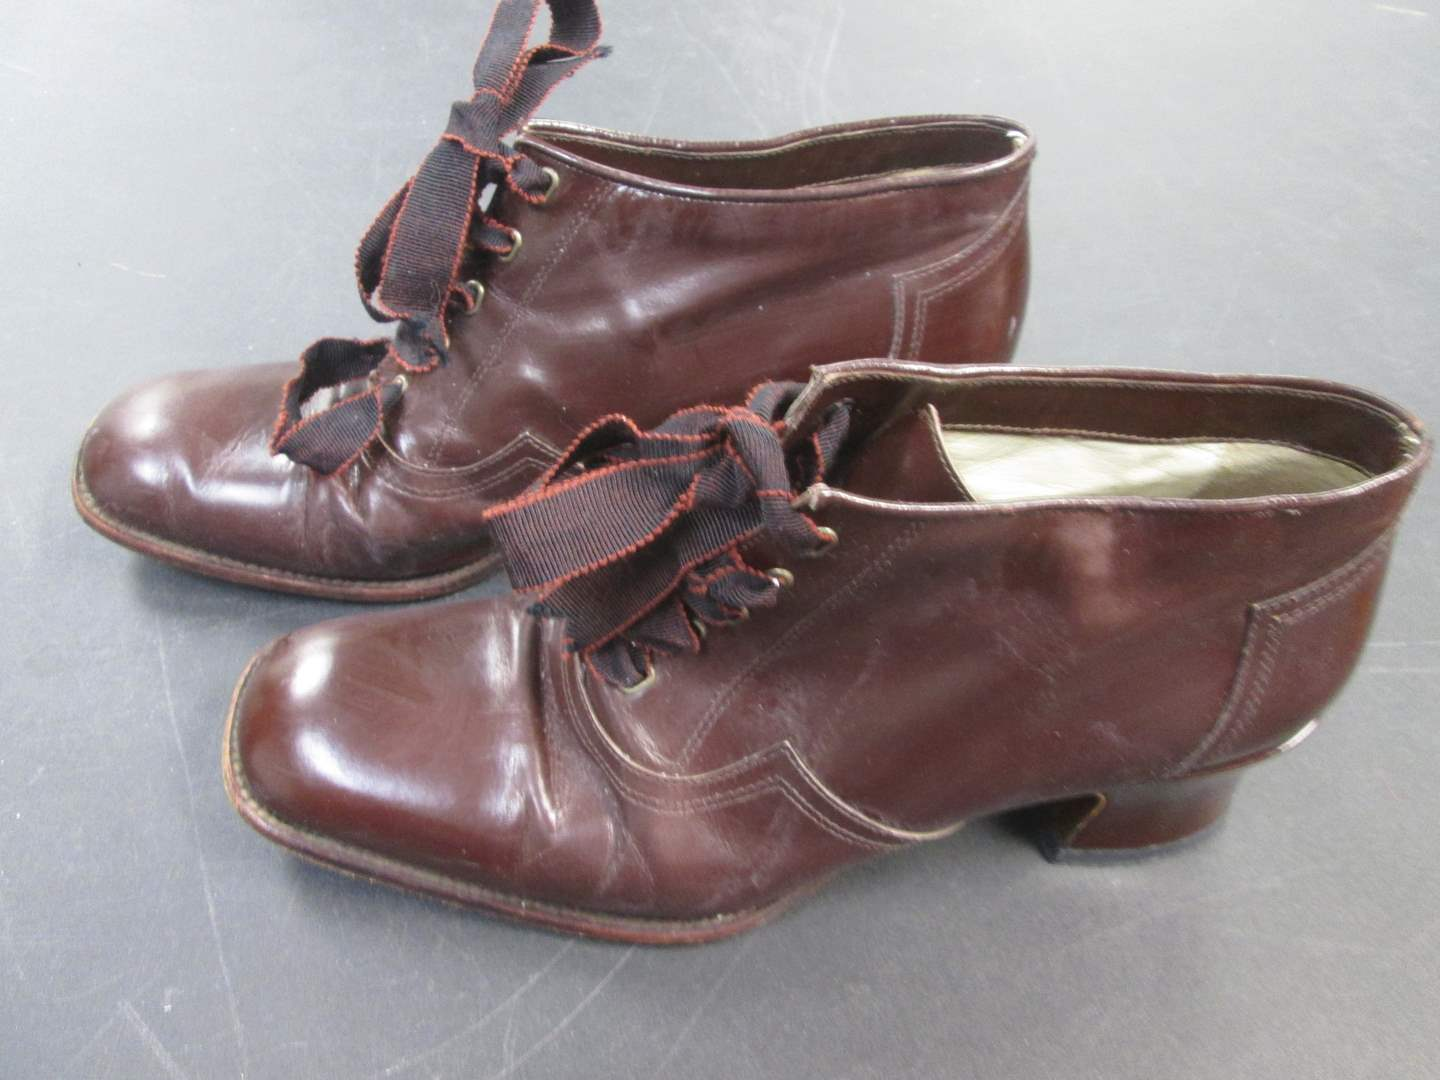 Lot # 60 - Vero Cuoio Boot Shoes, Italy, Size 37 1/2 (main image)